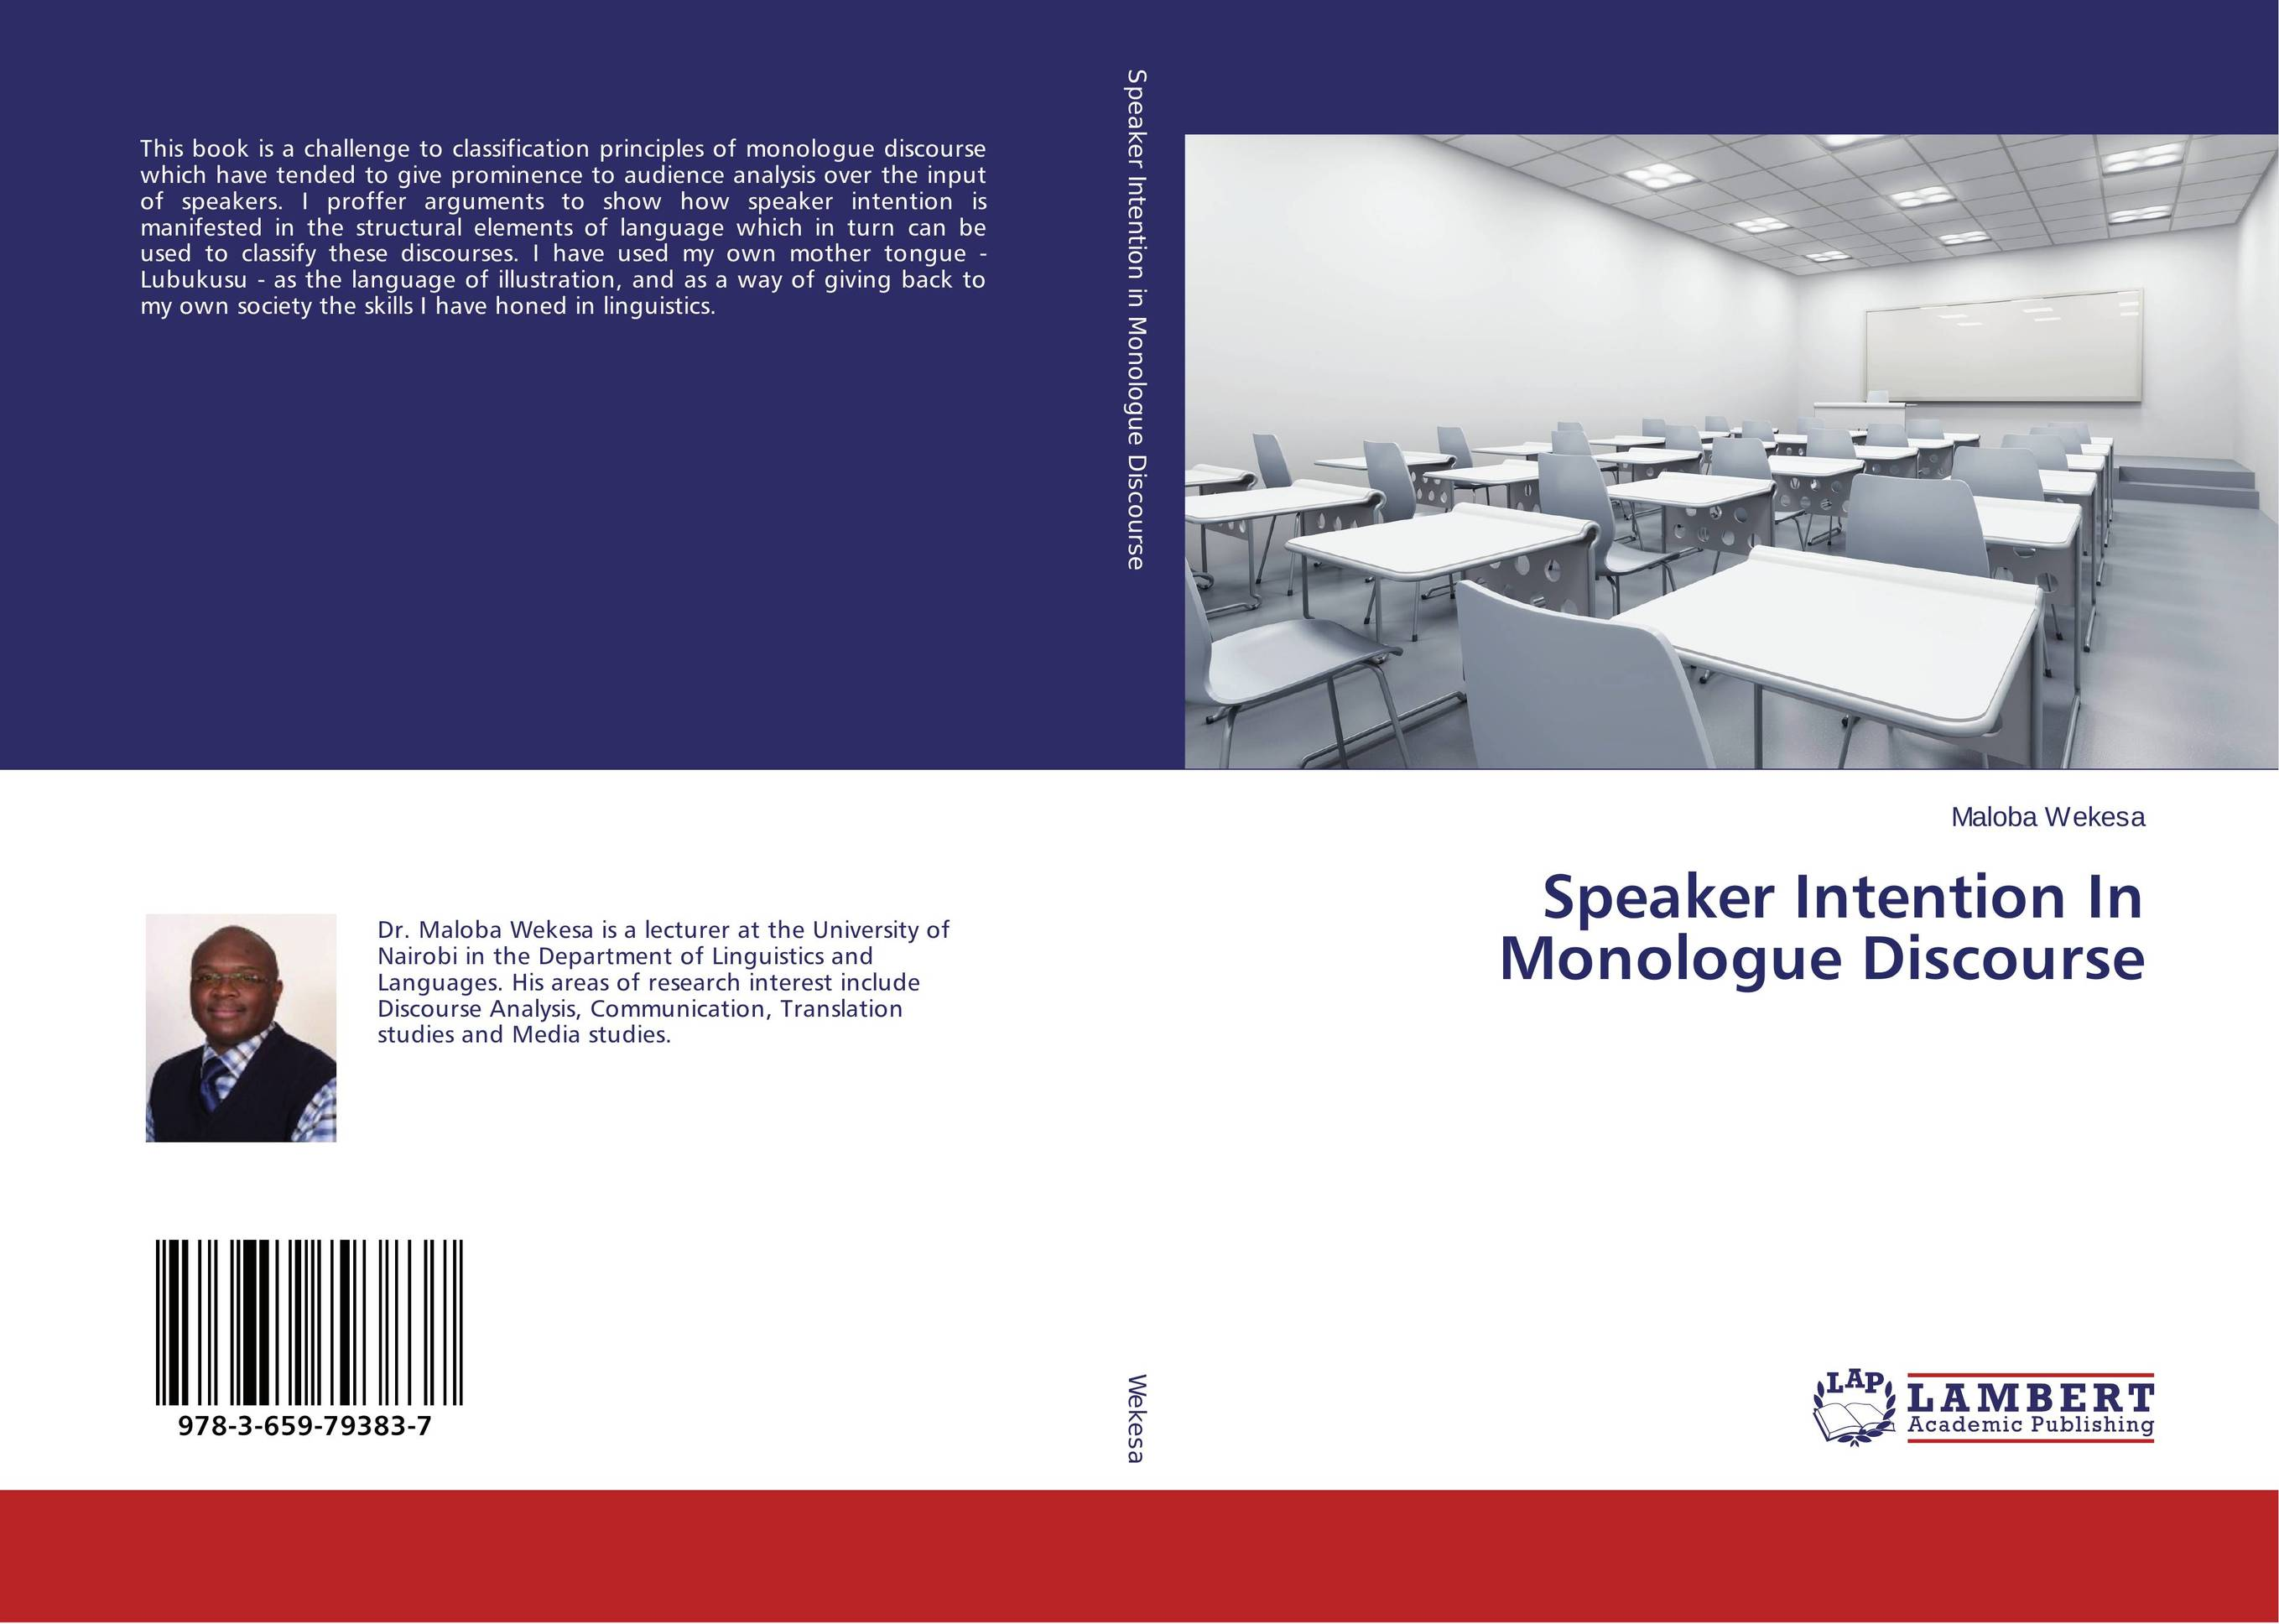 Speaker Intention In Monologue Discourse my own dear brother